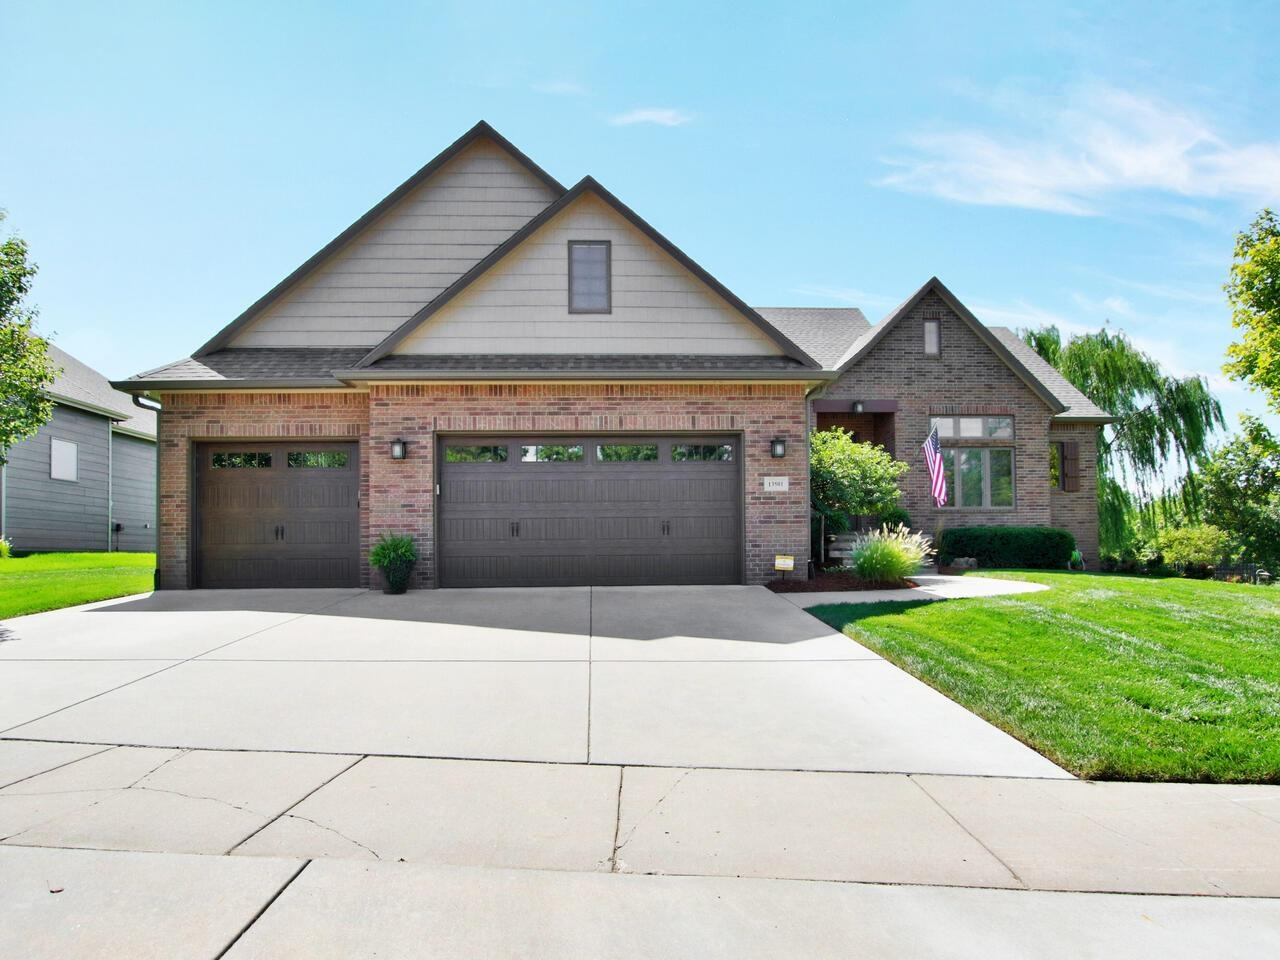 Better than New!  This amazing 6 bedroom ranch style home on almost 1/2 acre lot has everything you